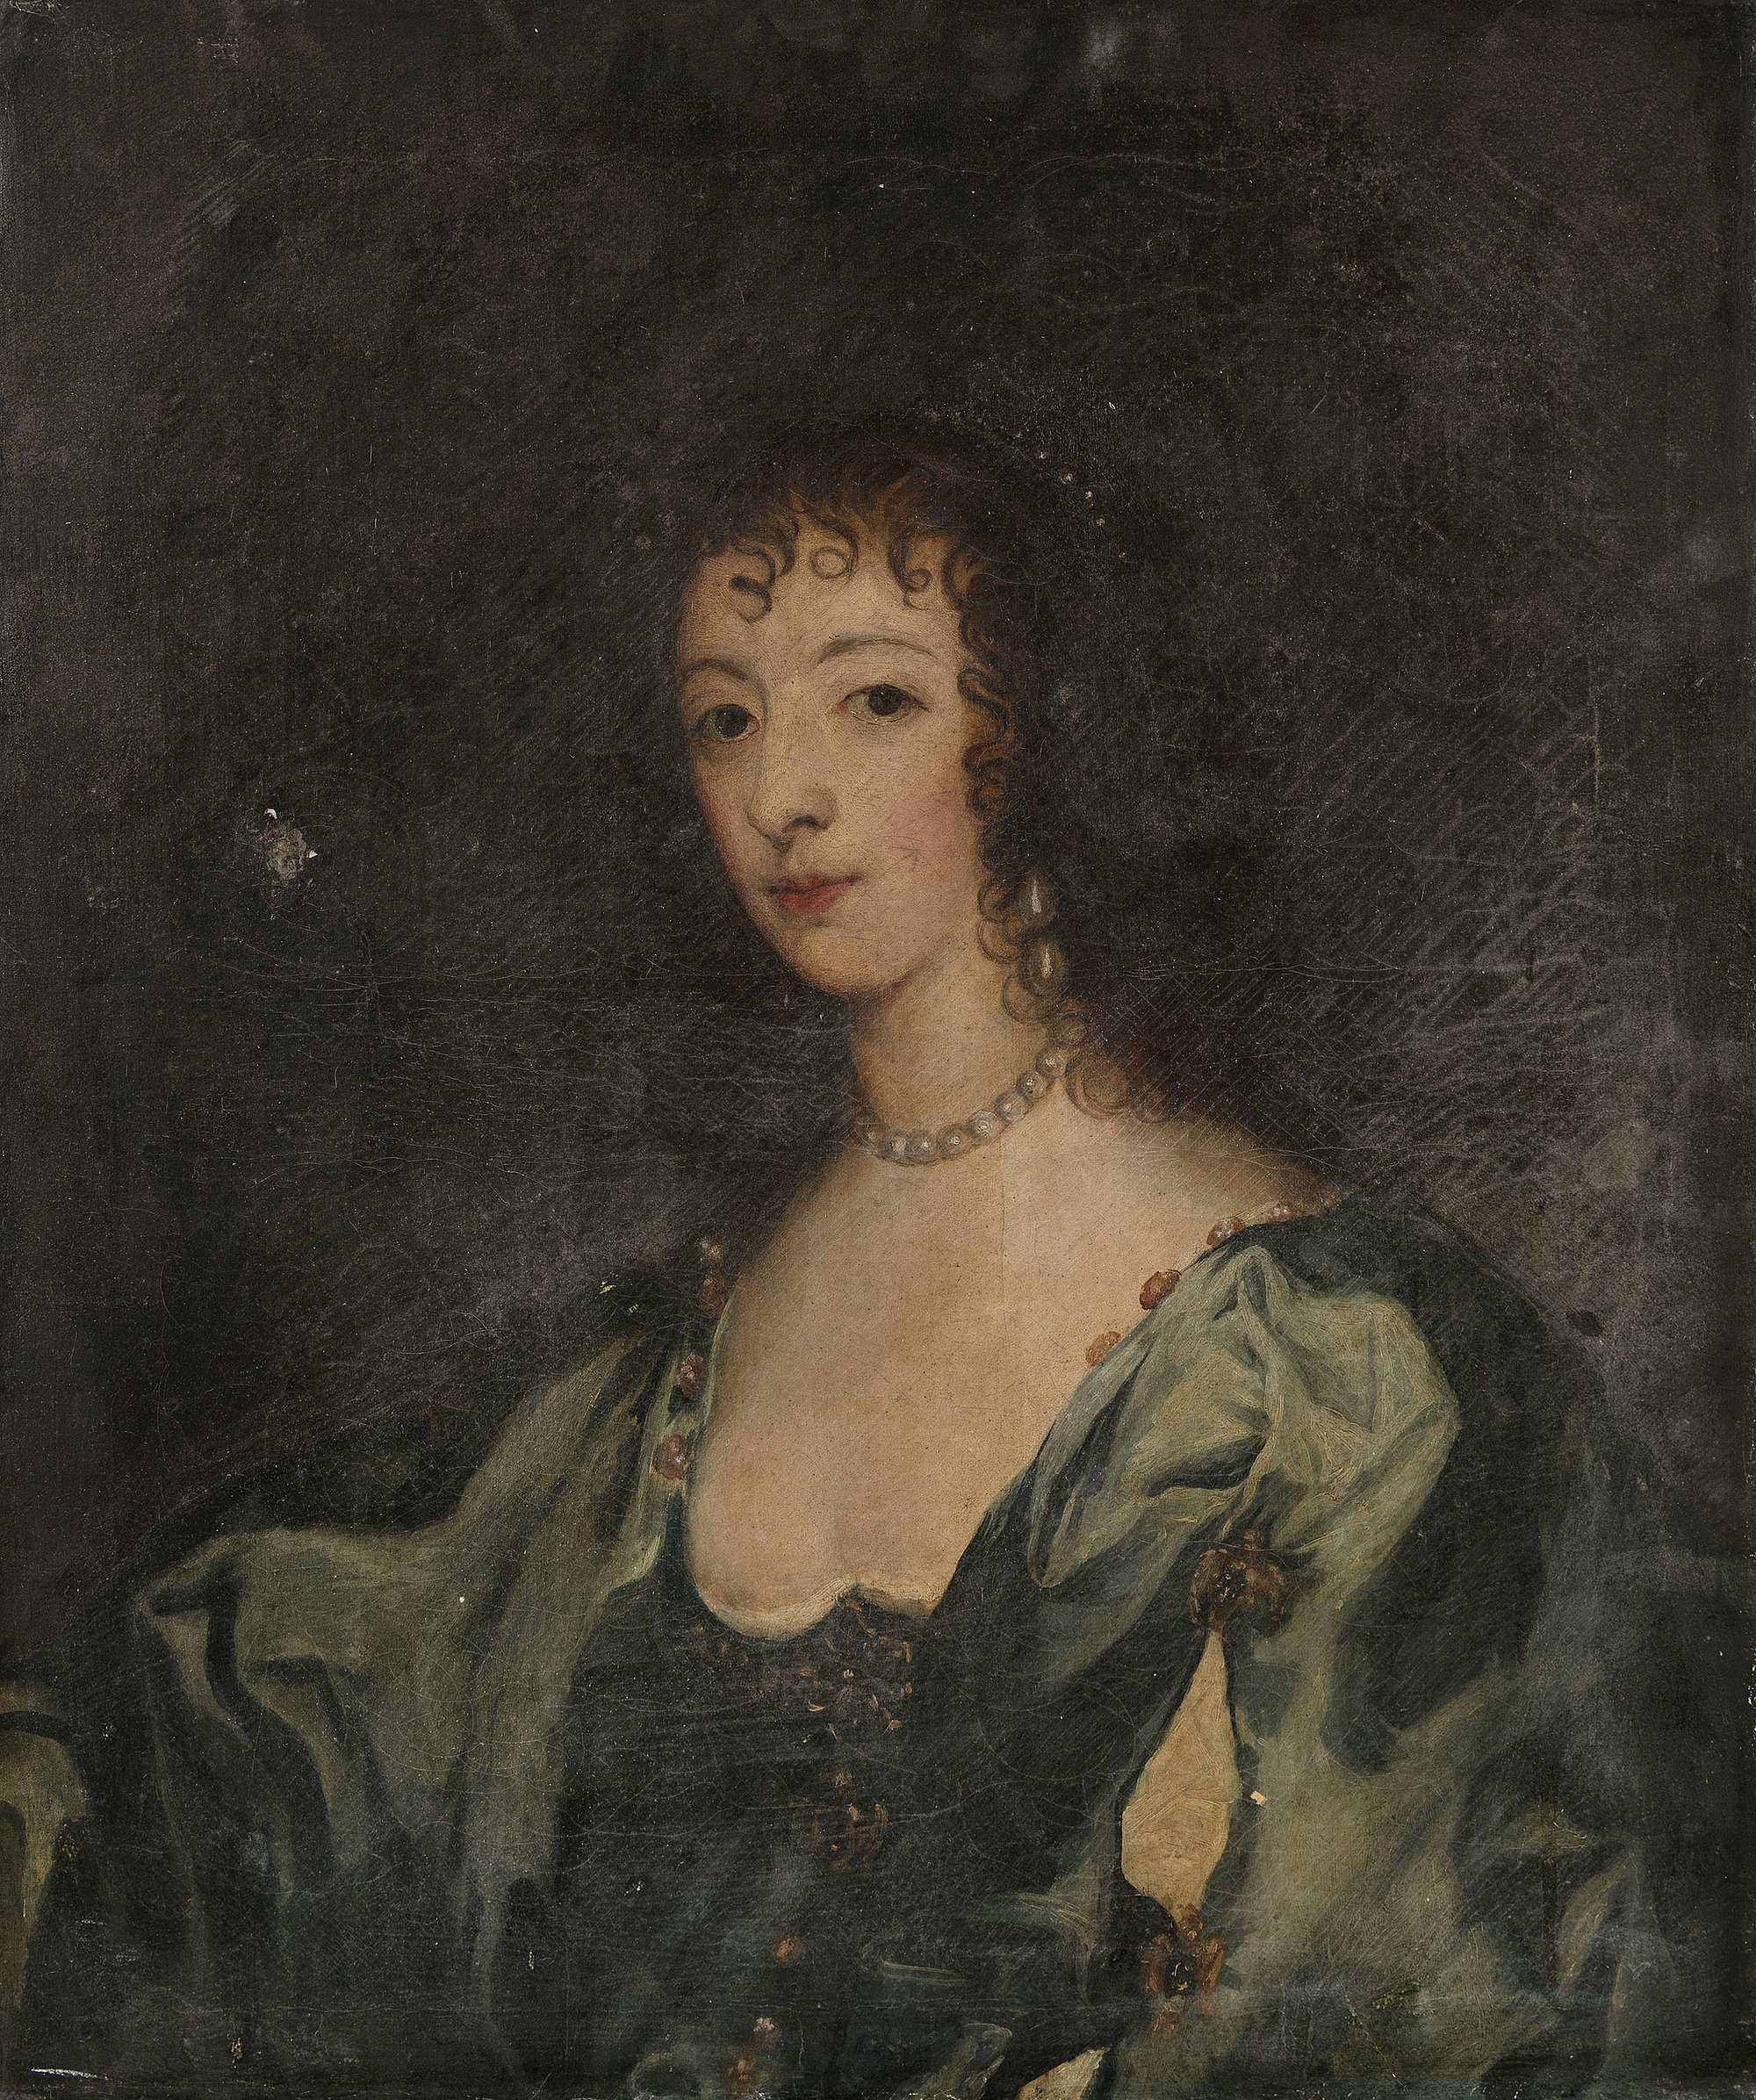 LOT:59   ENGLISH SCHOOL (LATE 17TH CENTURY) Portrait of a Woman,  half-length, in blue dress 75 x 61cm Provenance: Rathescar House, Co. Louth